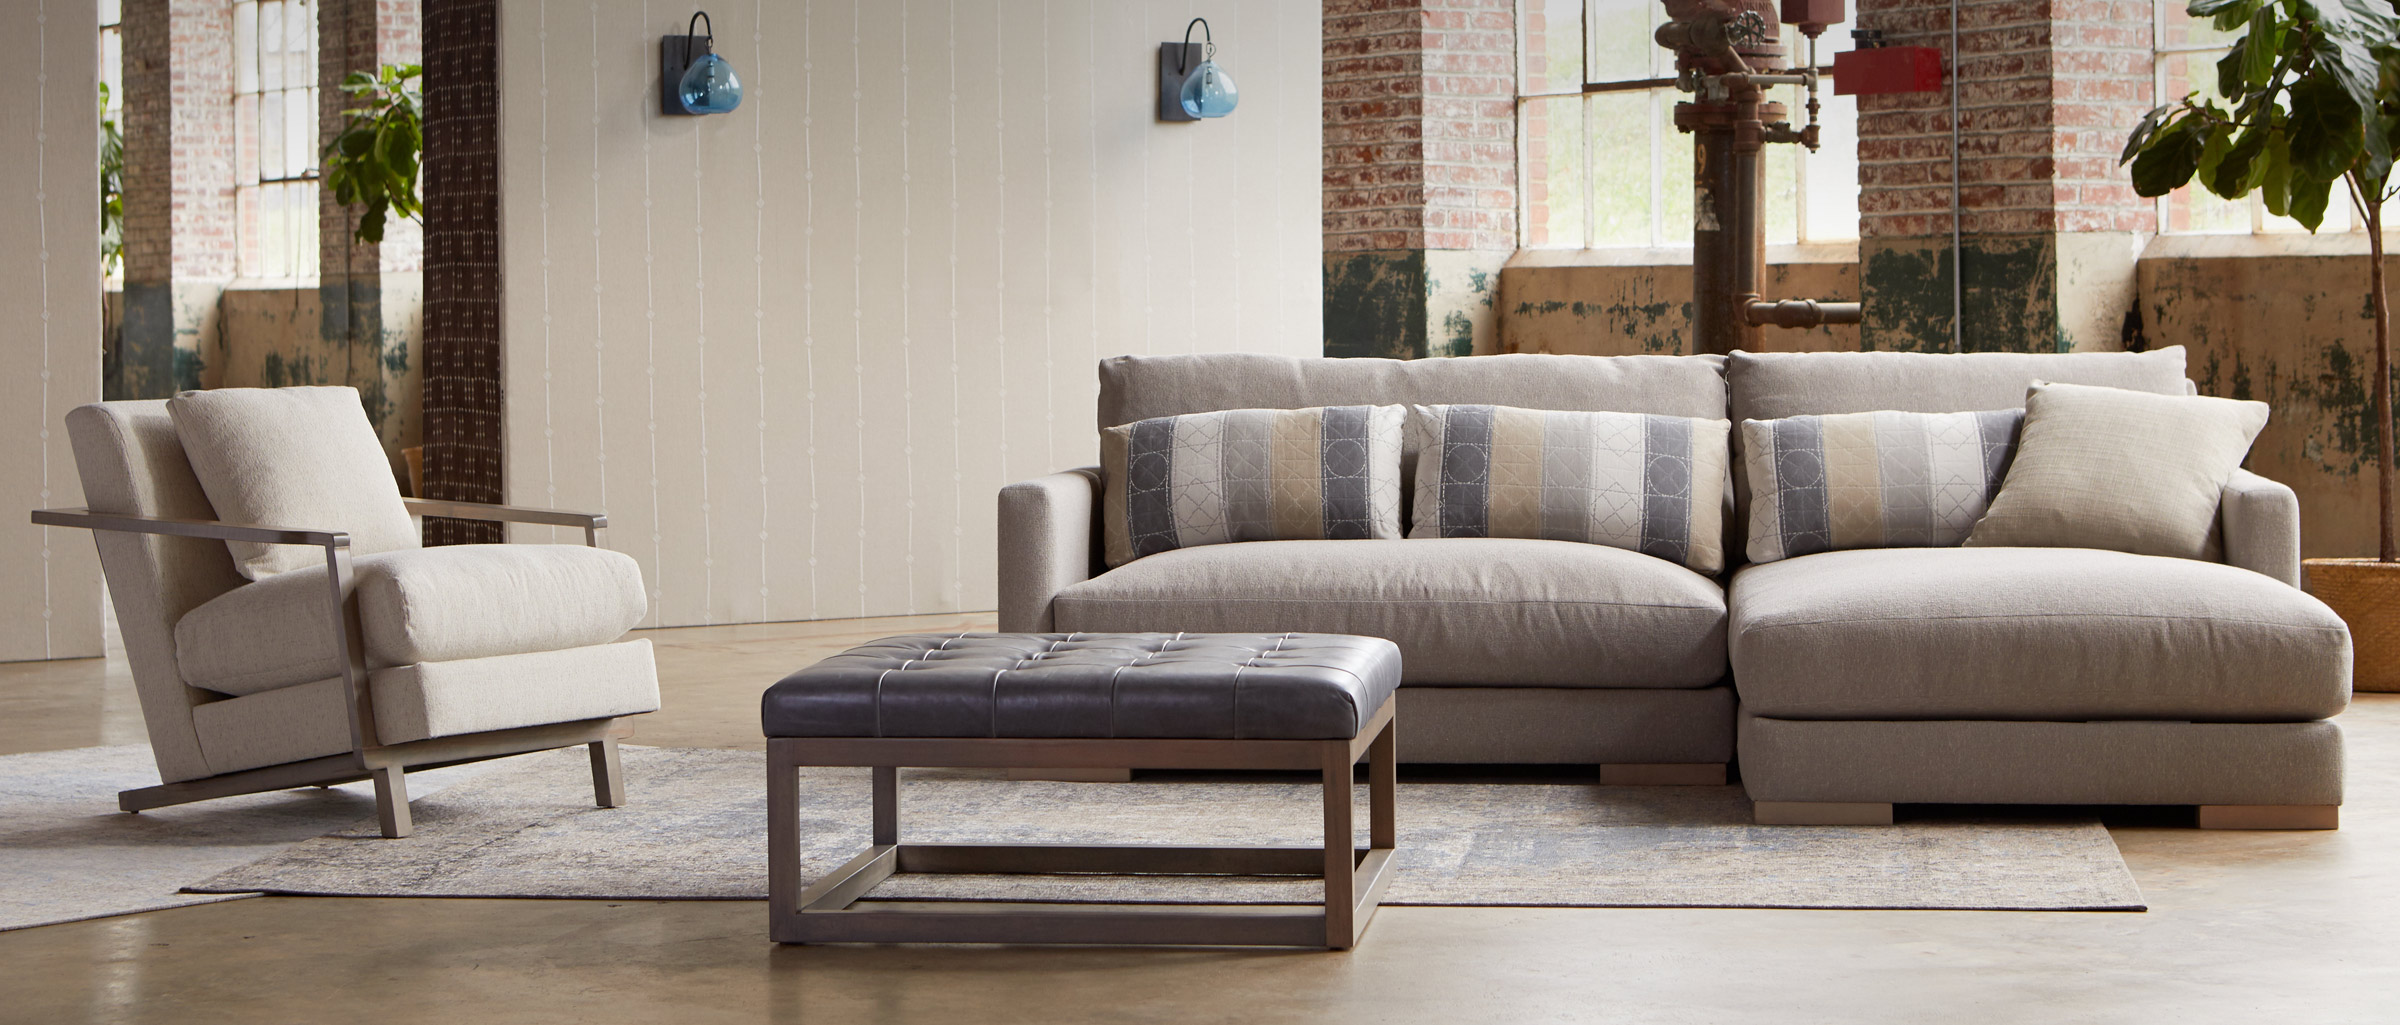 The Chill Sectional